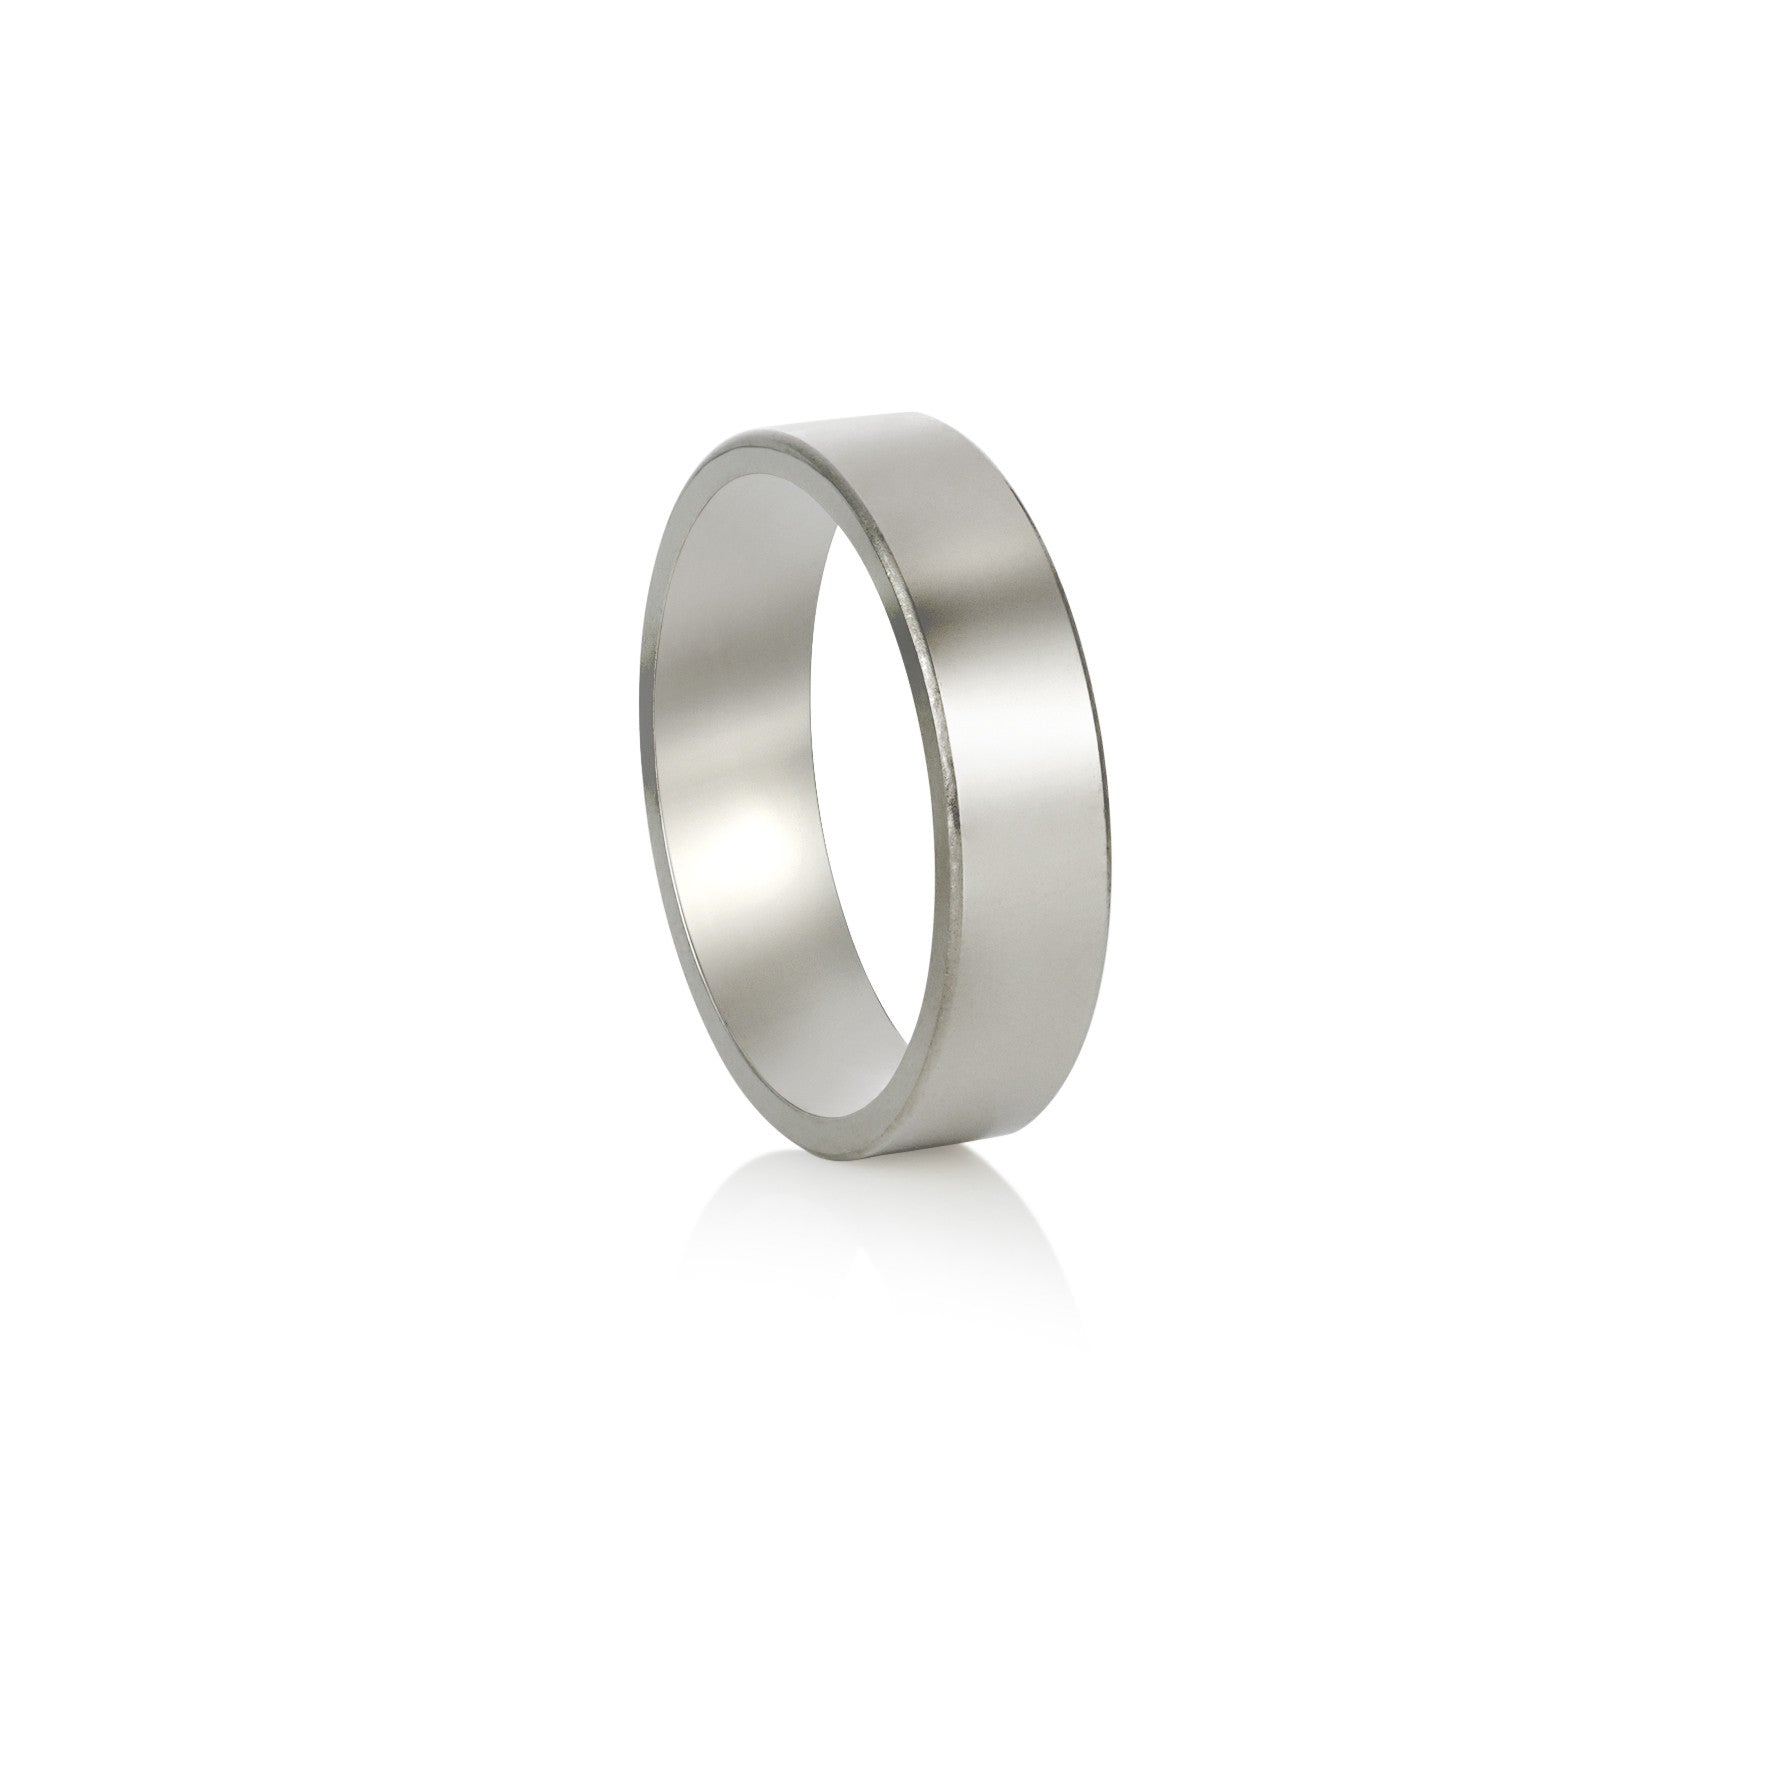 White Gold Wedding Band - Flat Profile